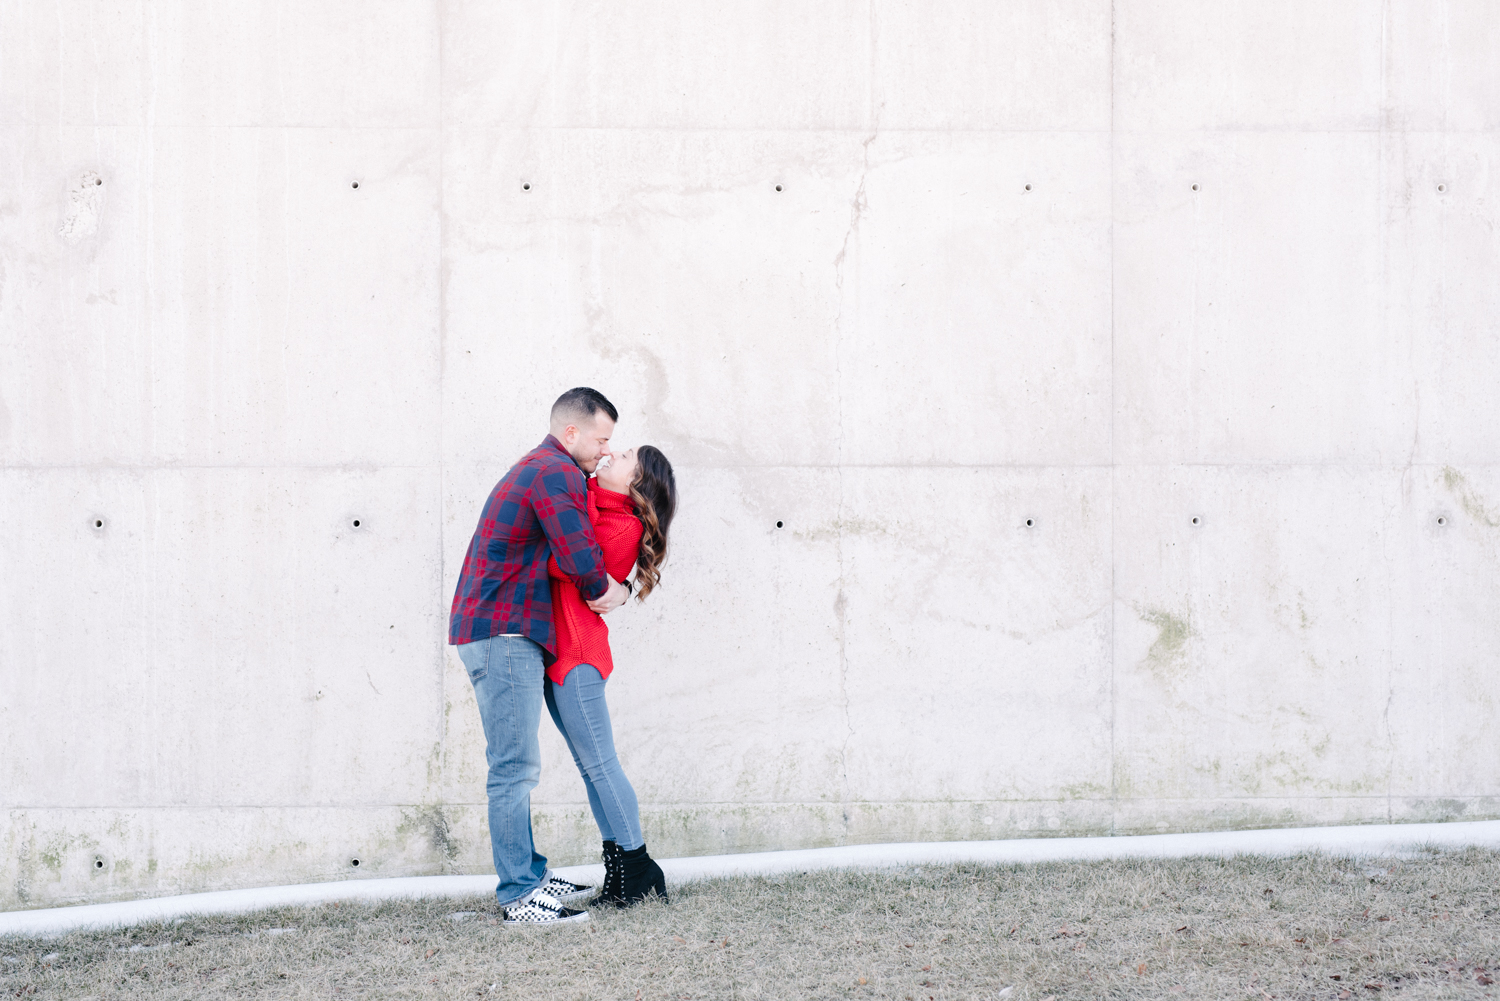 Liberty State Park Engagement Session- Danielle + Joe- New Jersey- Olivia Christina Photo-140.jpg